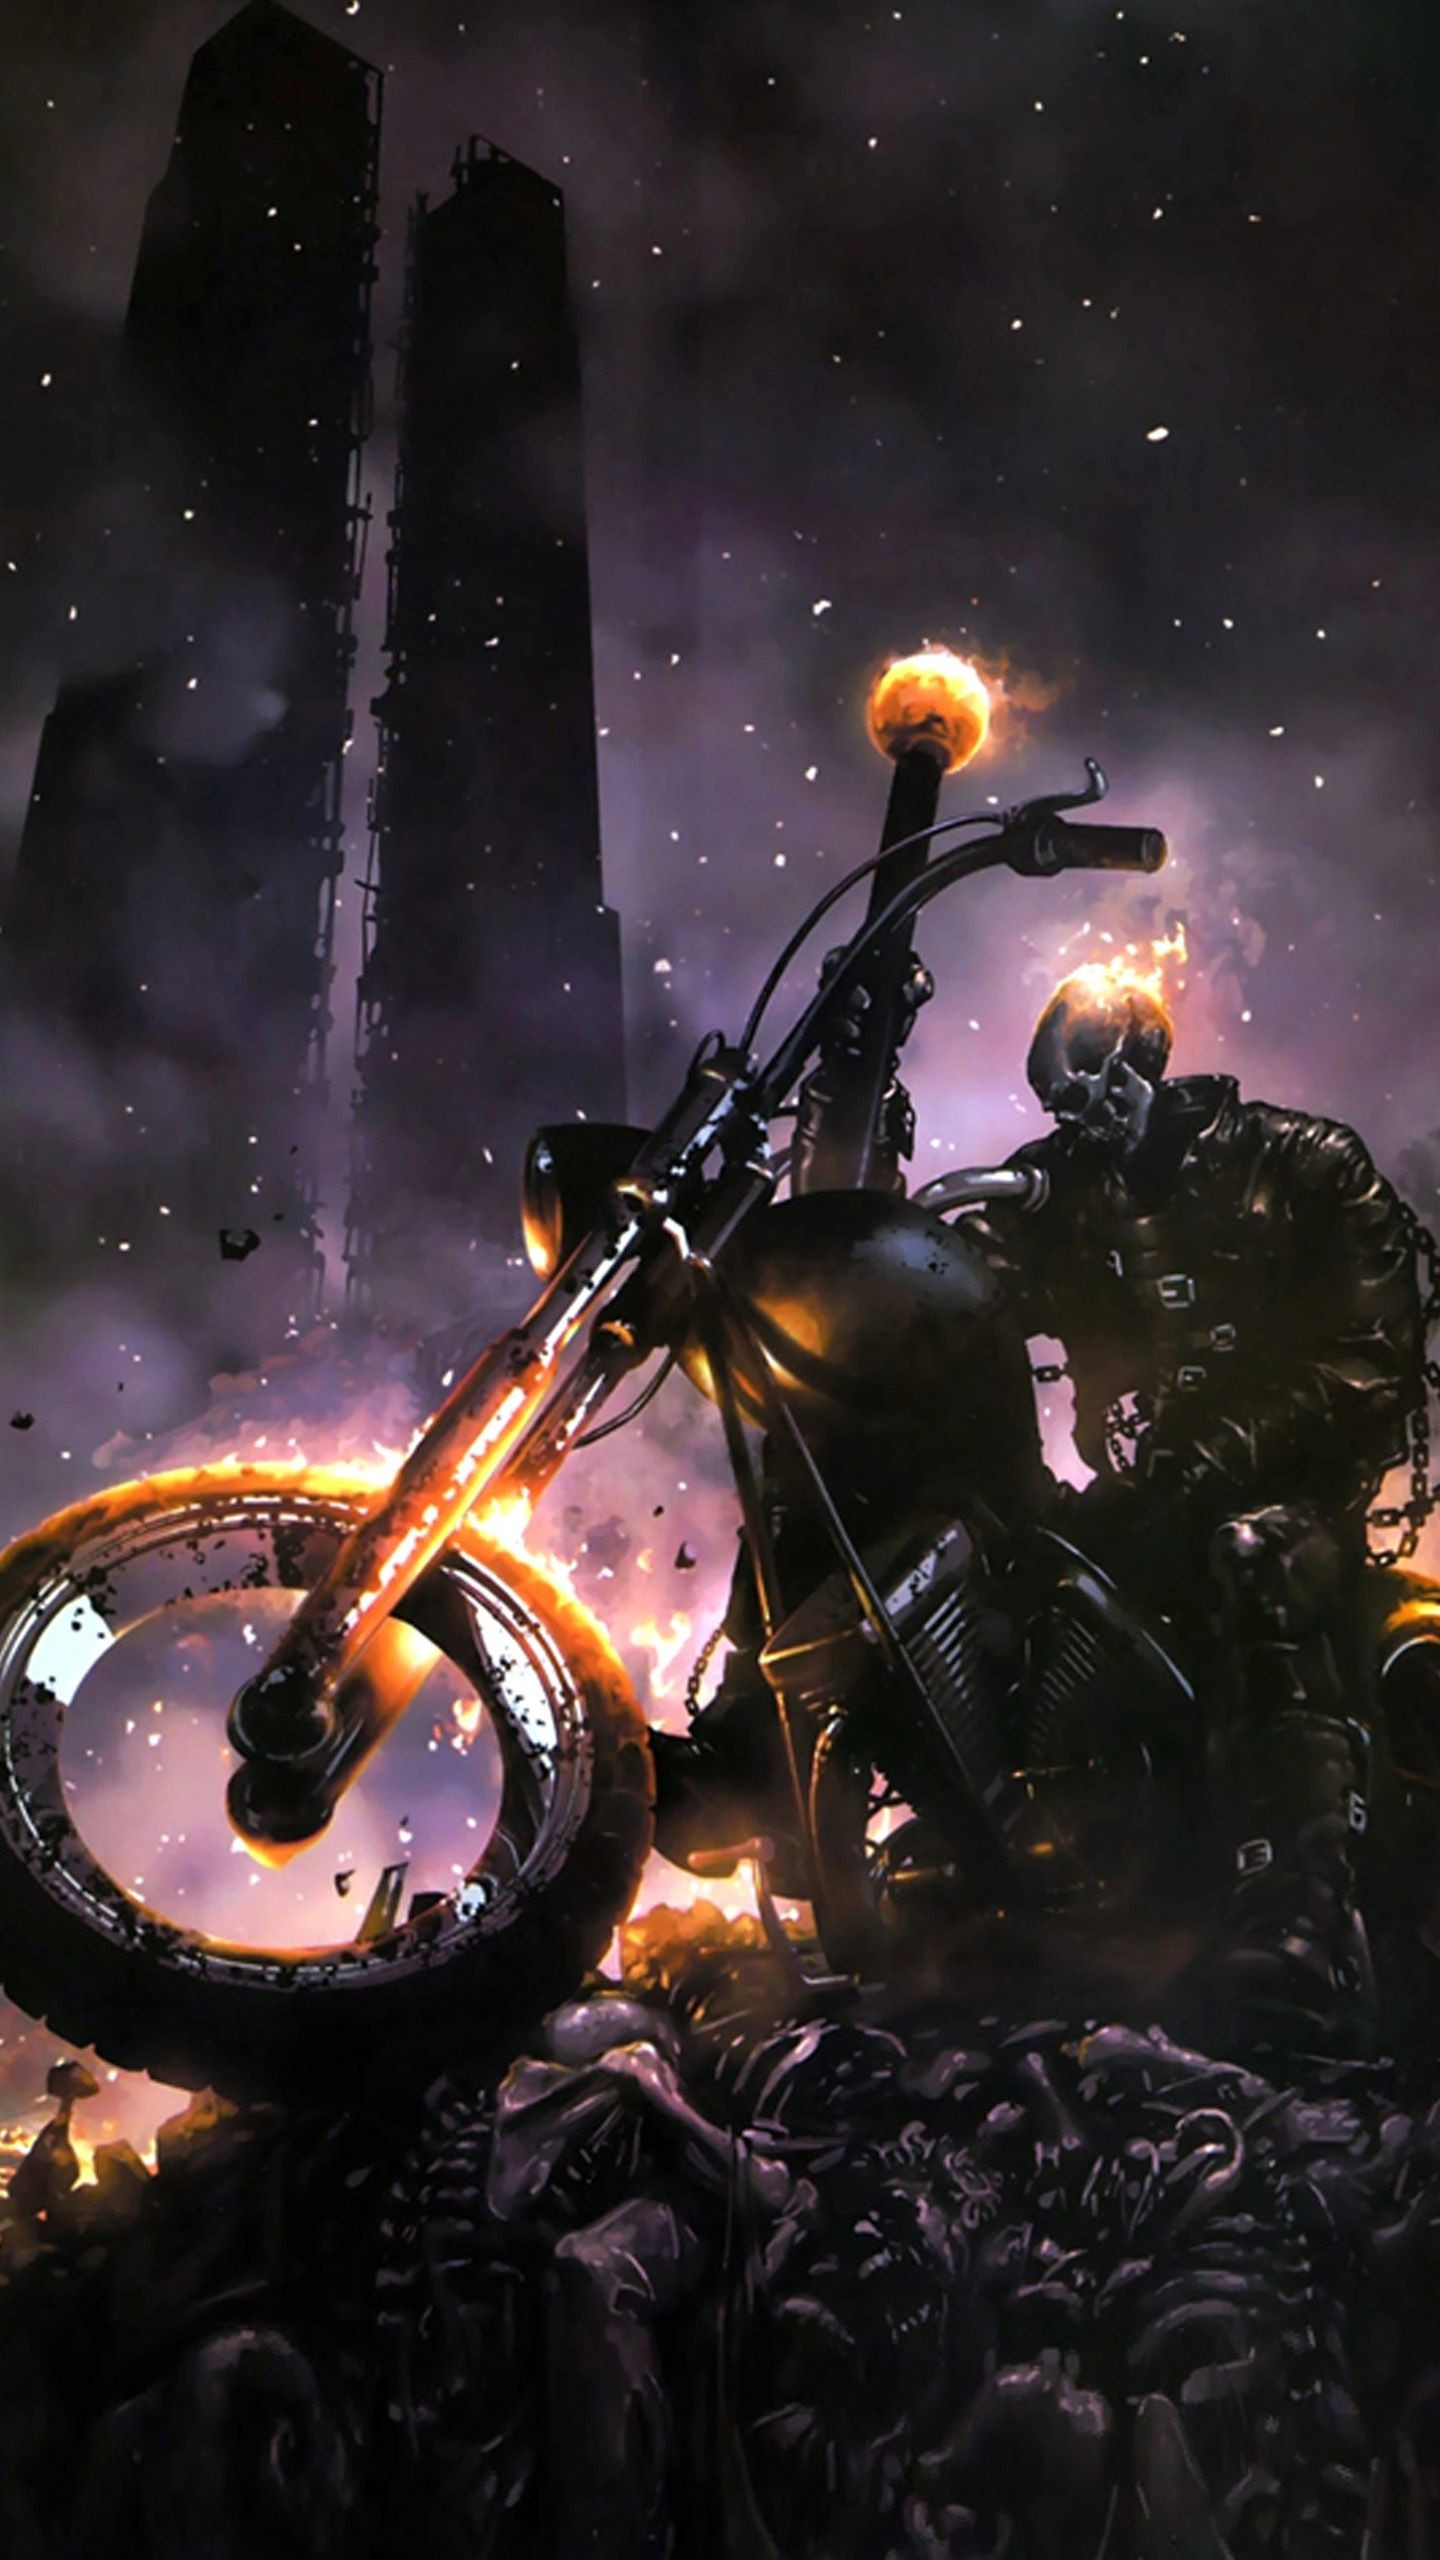 Res: 1440x2560, Samsung Galaxy Note 4 Wallpaper: Ghost rider Mobile Android Wallpapers